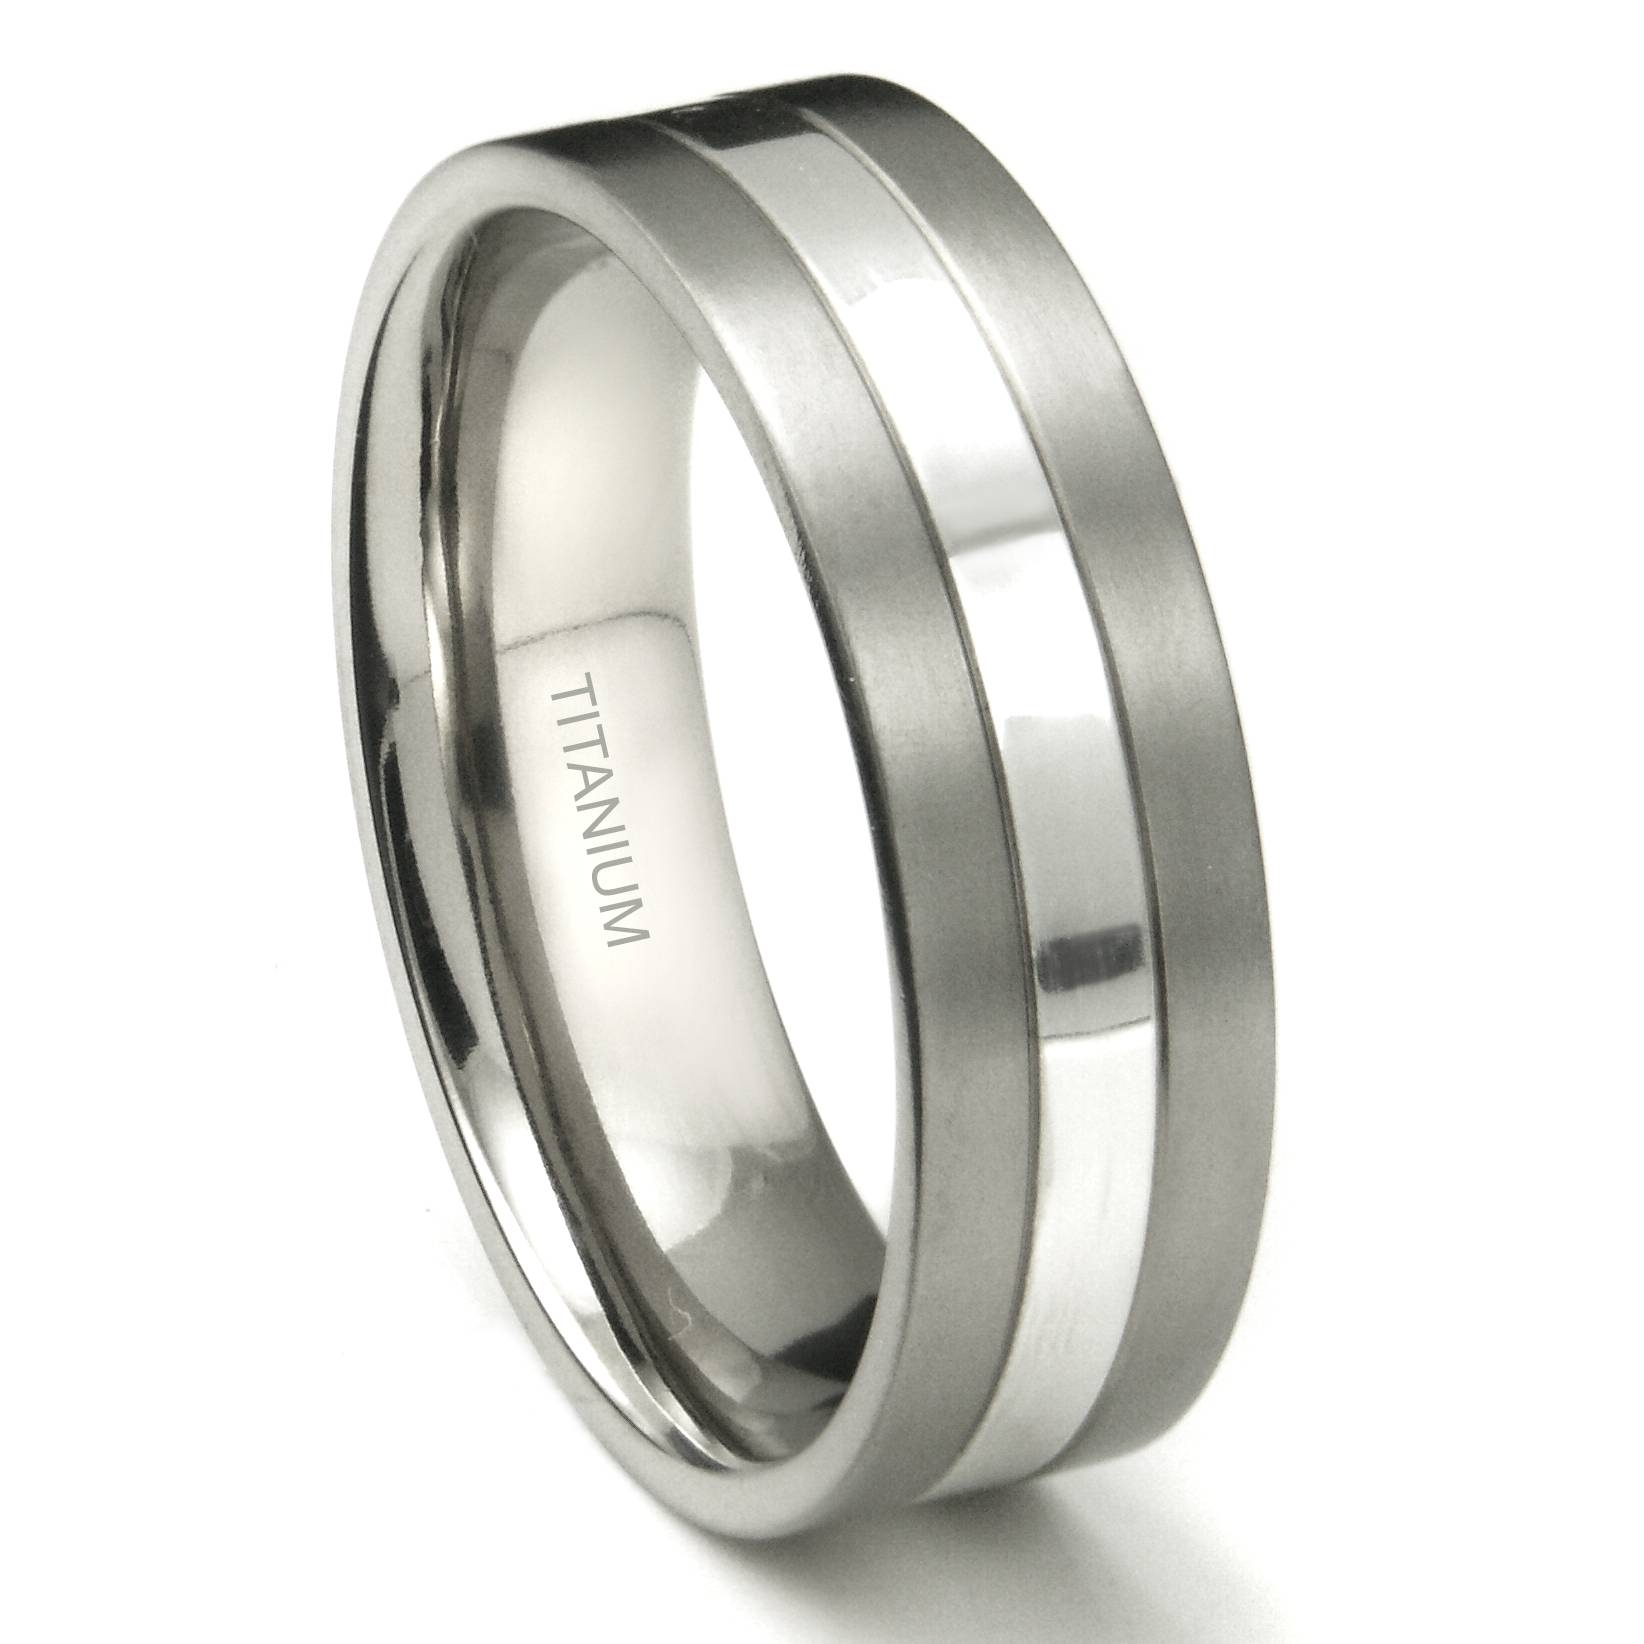 Titanium 7Mm Two Tone Wedding Ring Intended For Titanium Mens Wedding Bands (View 11 of 15)